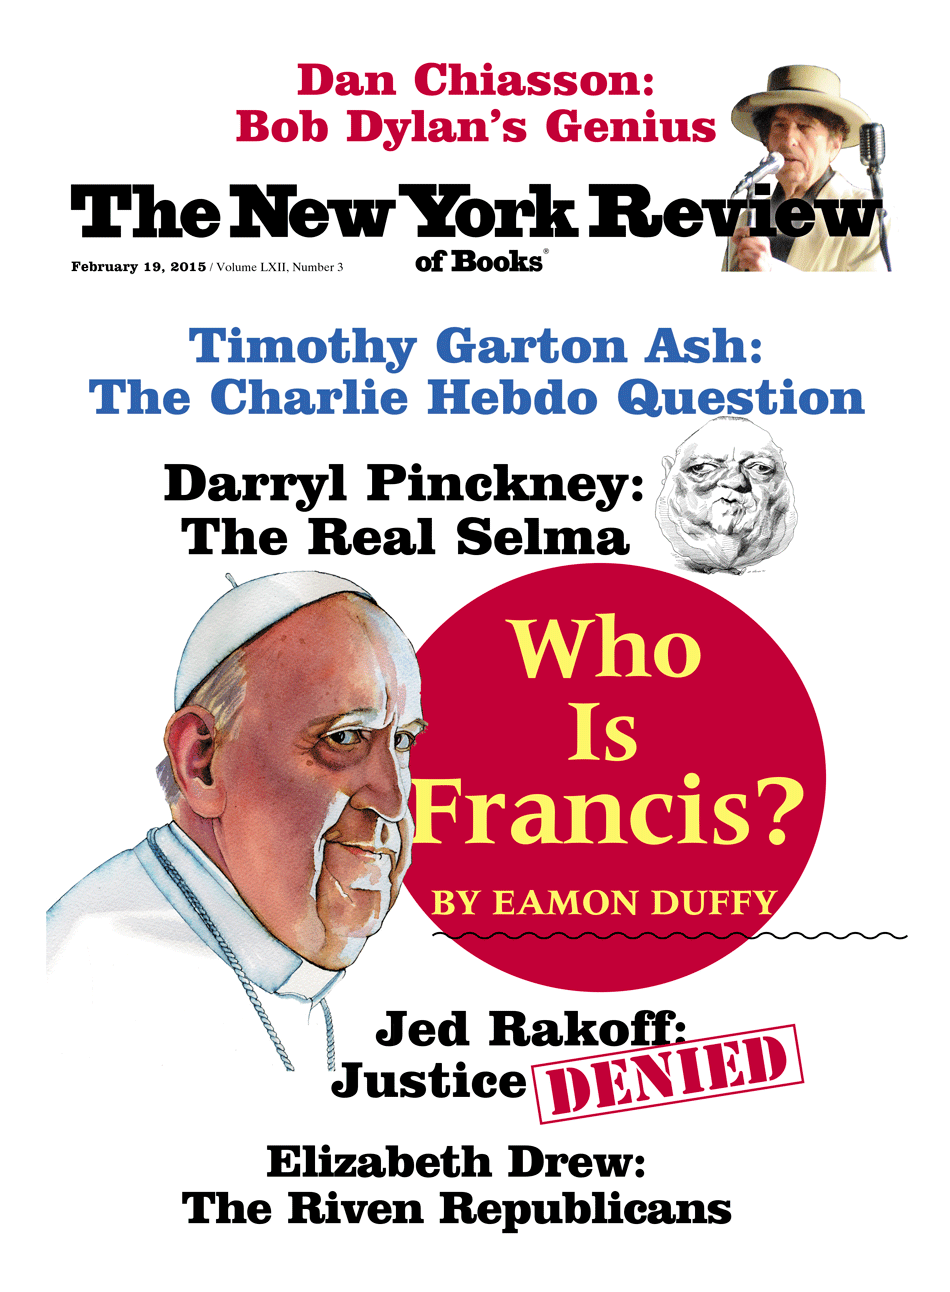 Image of the February 19, 2015 issue cover.